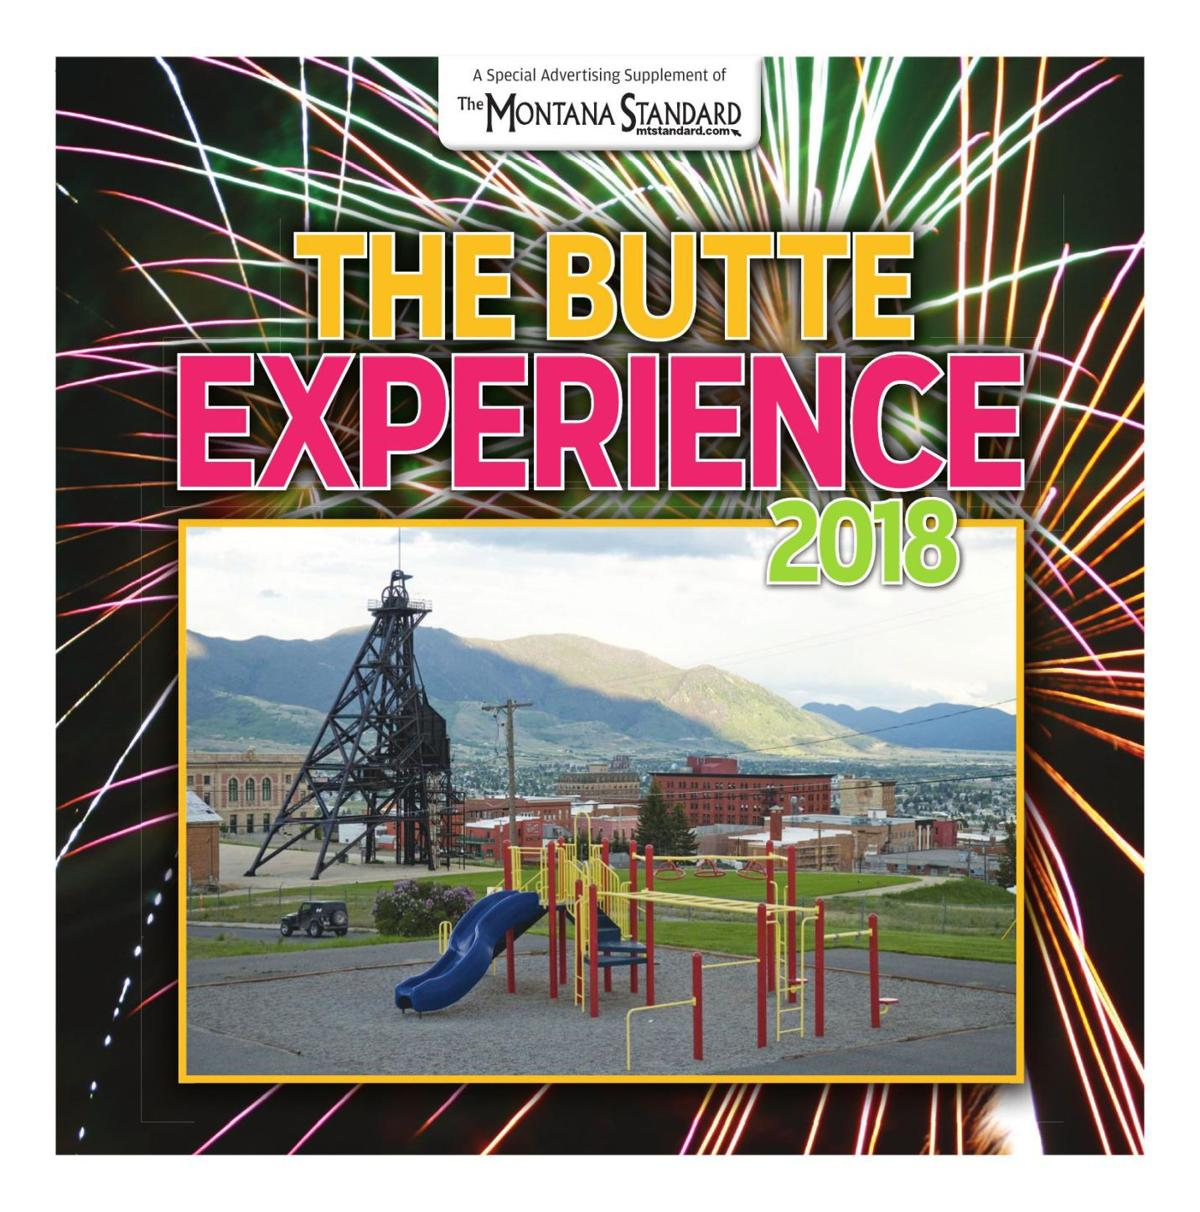 The Butte Experience - July 1, 2018